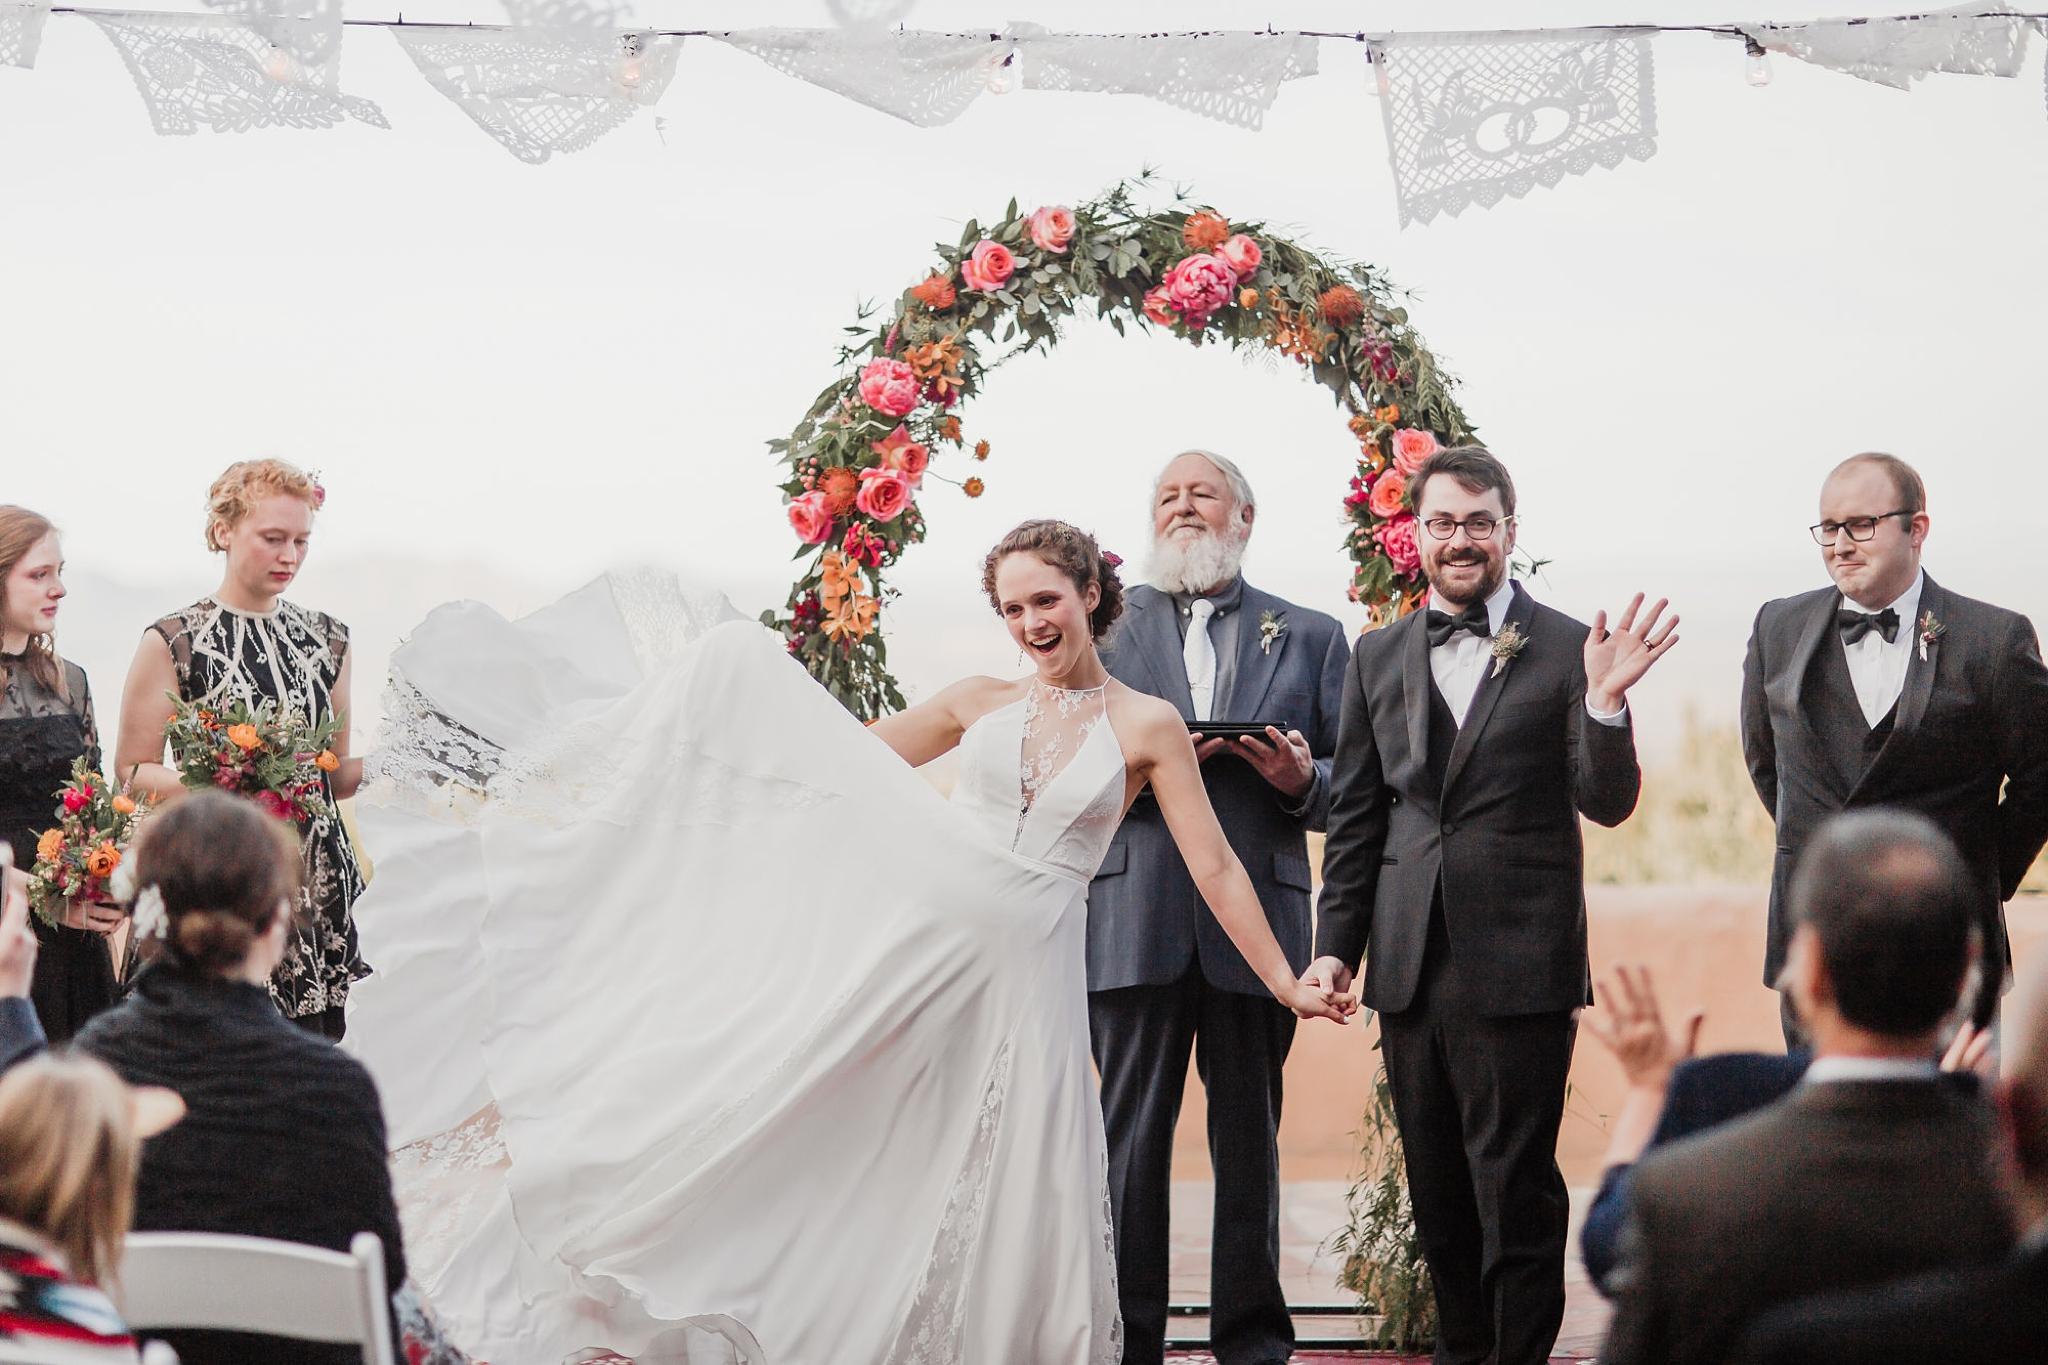 Alicia+lucia+photography+-+albuquerque+wedding+photographer+-+santa+fe+wedding+photography+-+new+mexico+wedding+photographer+-+new+mexico+wedding+-+wedding+vows+-+writing+your+own+vows+-+wedding+inspo_0036.jpg